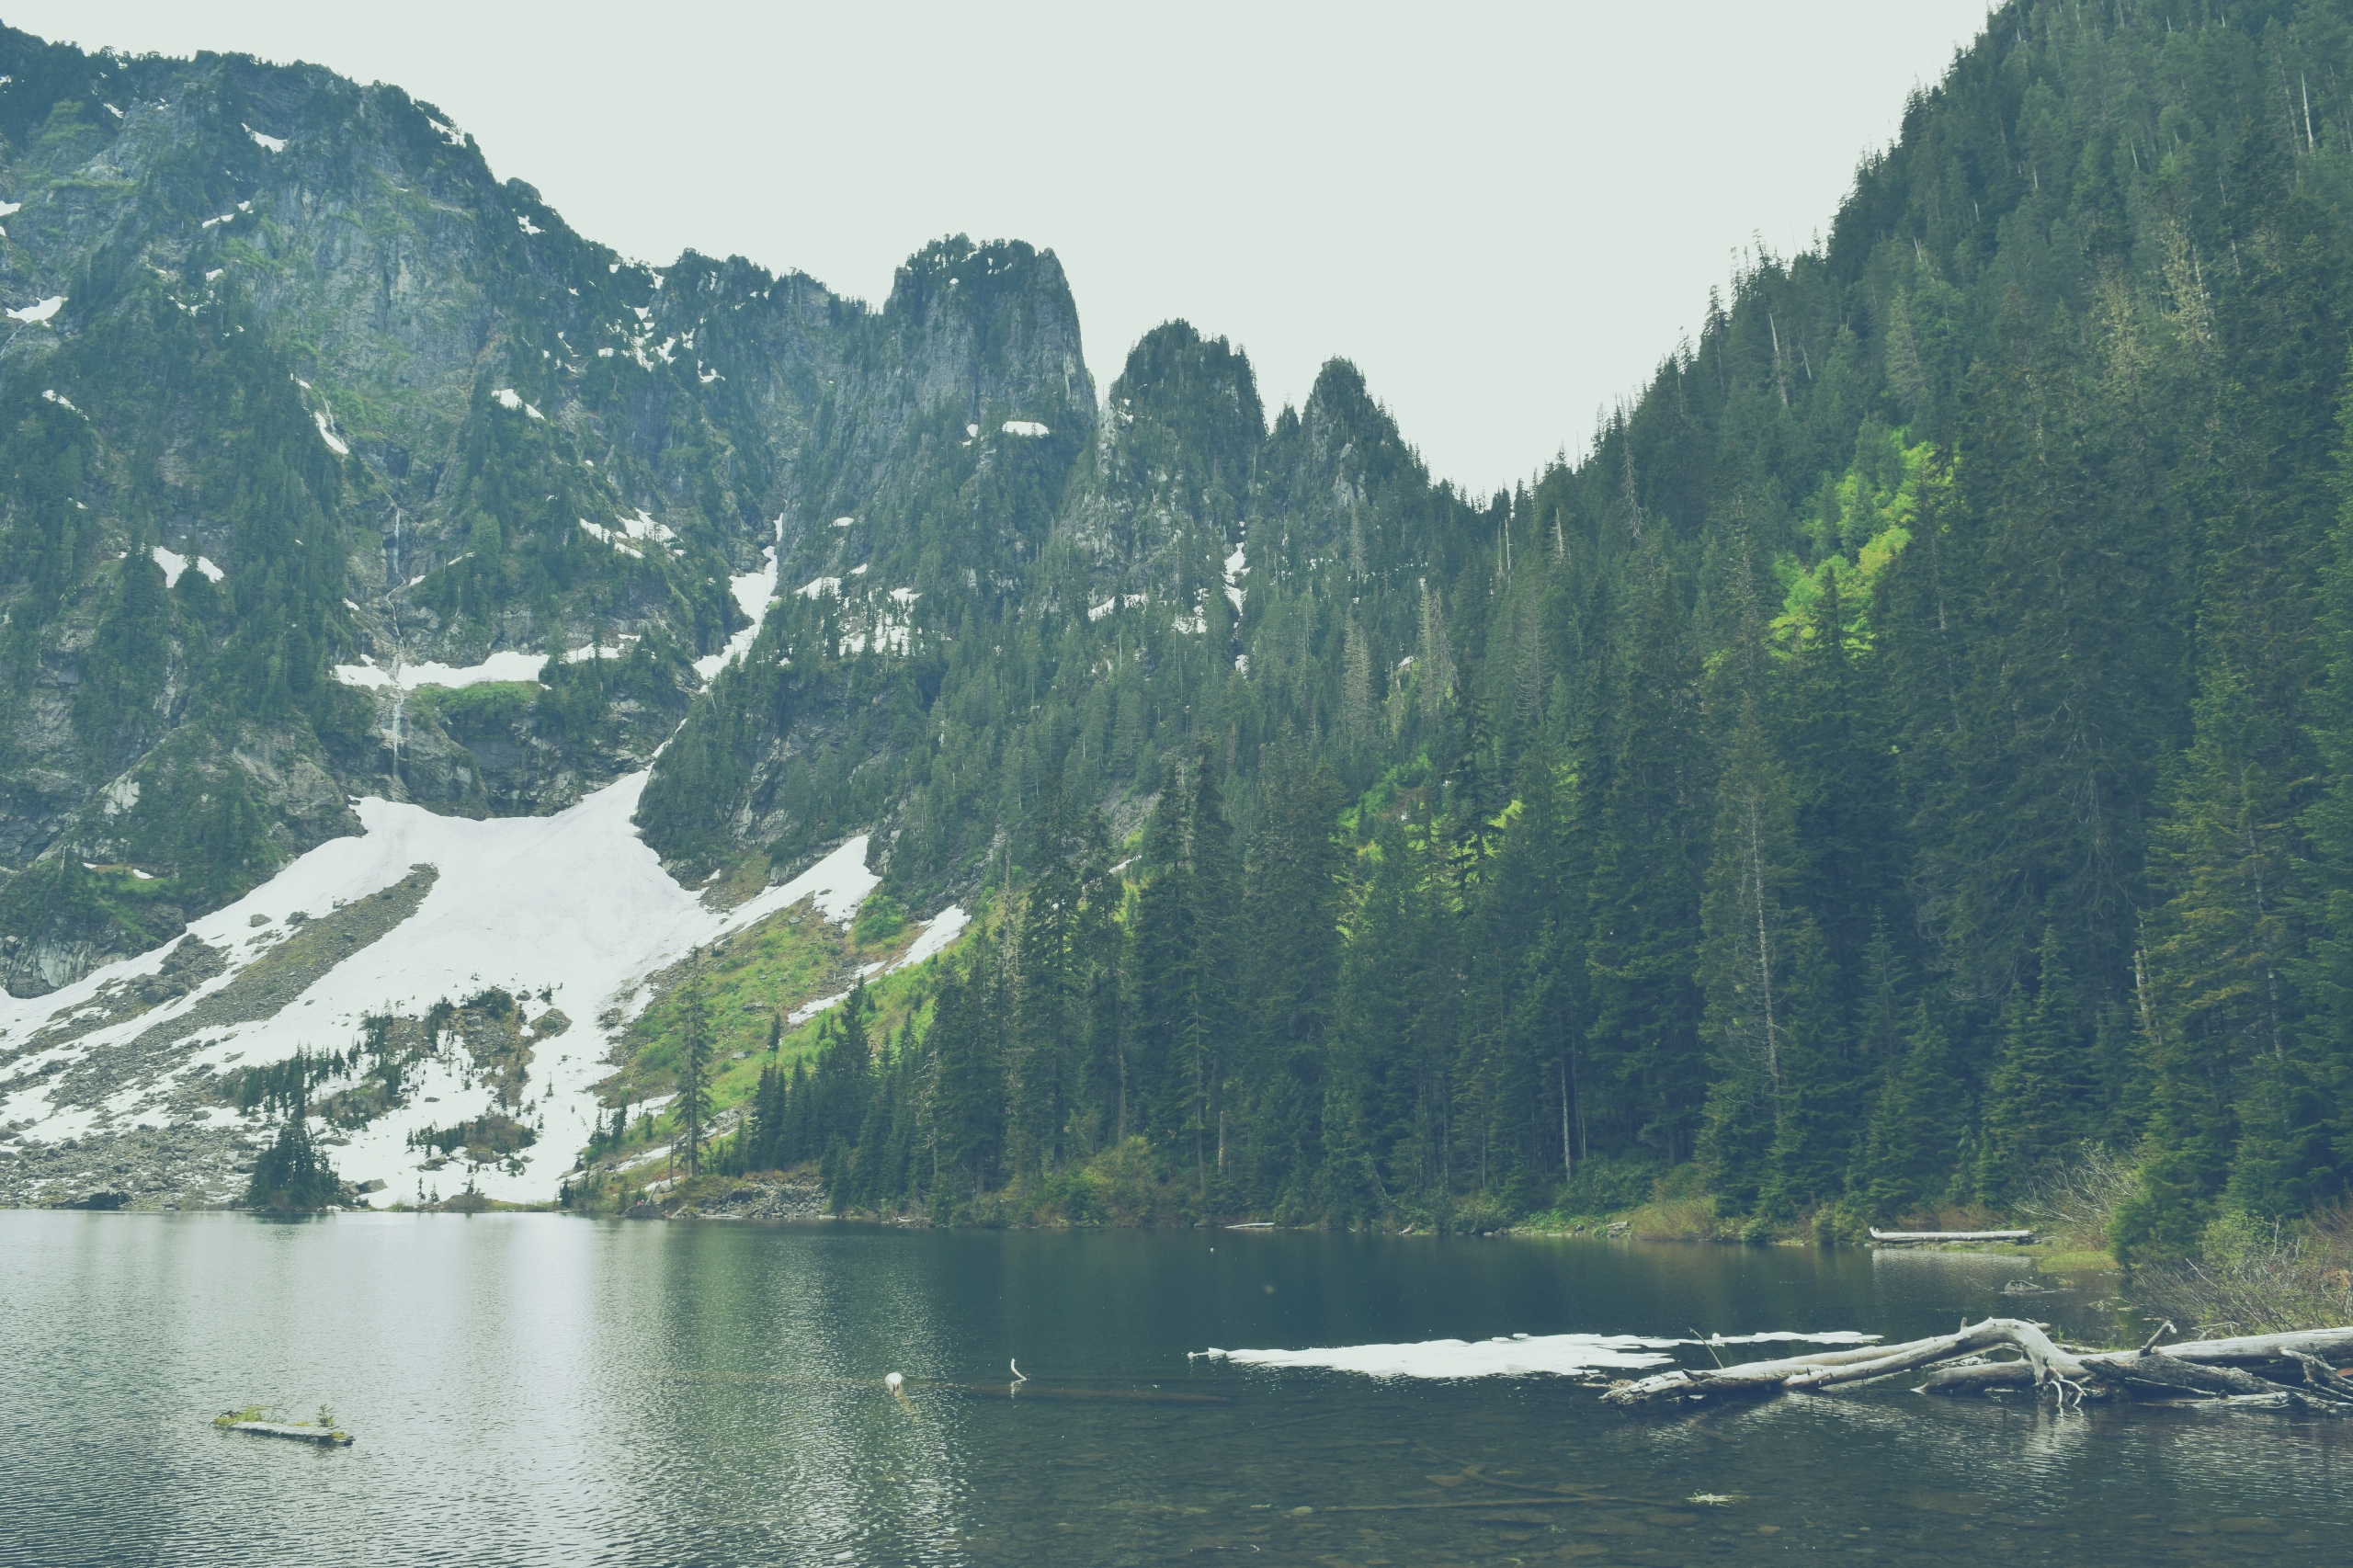 Lake 22 hike - mountains, nature - cokes | ello